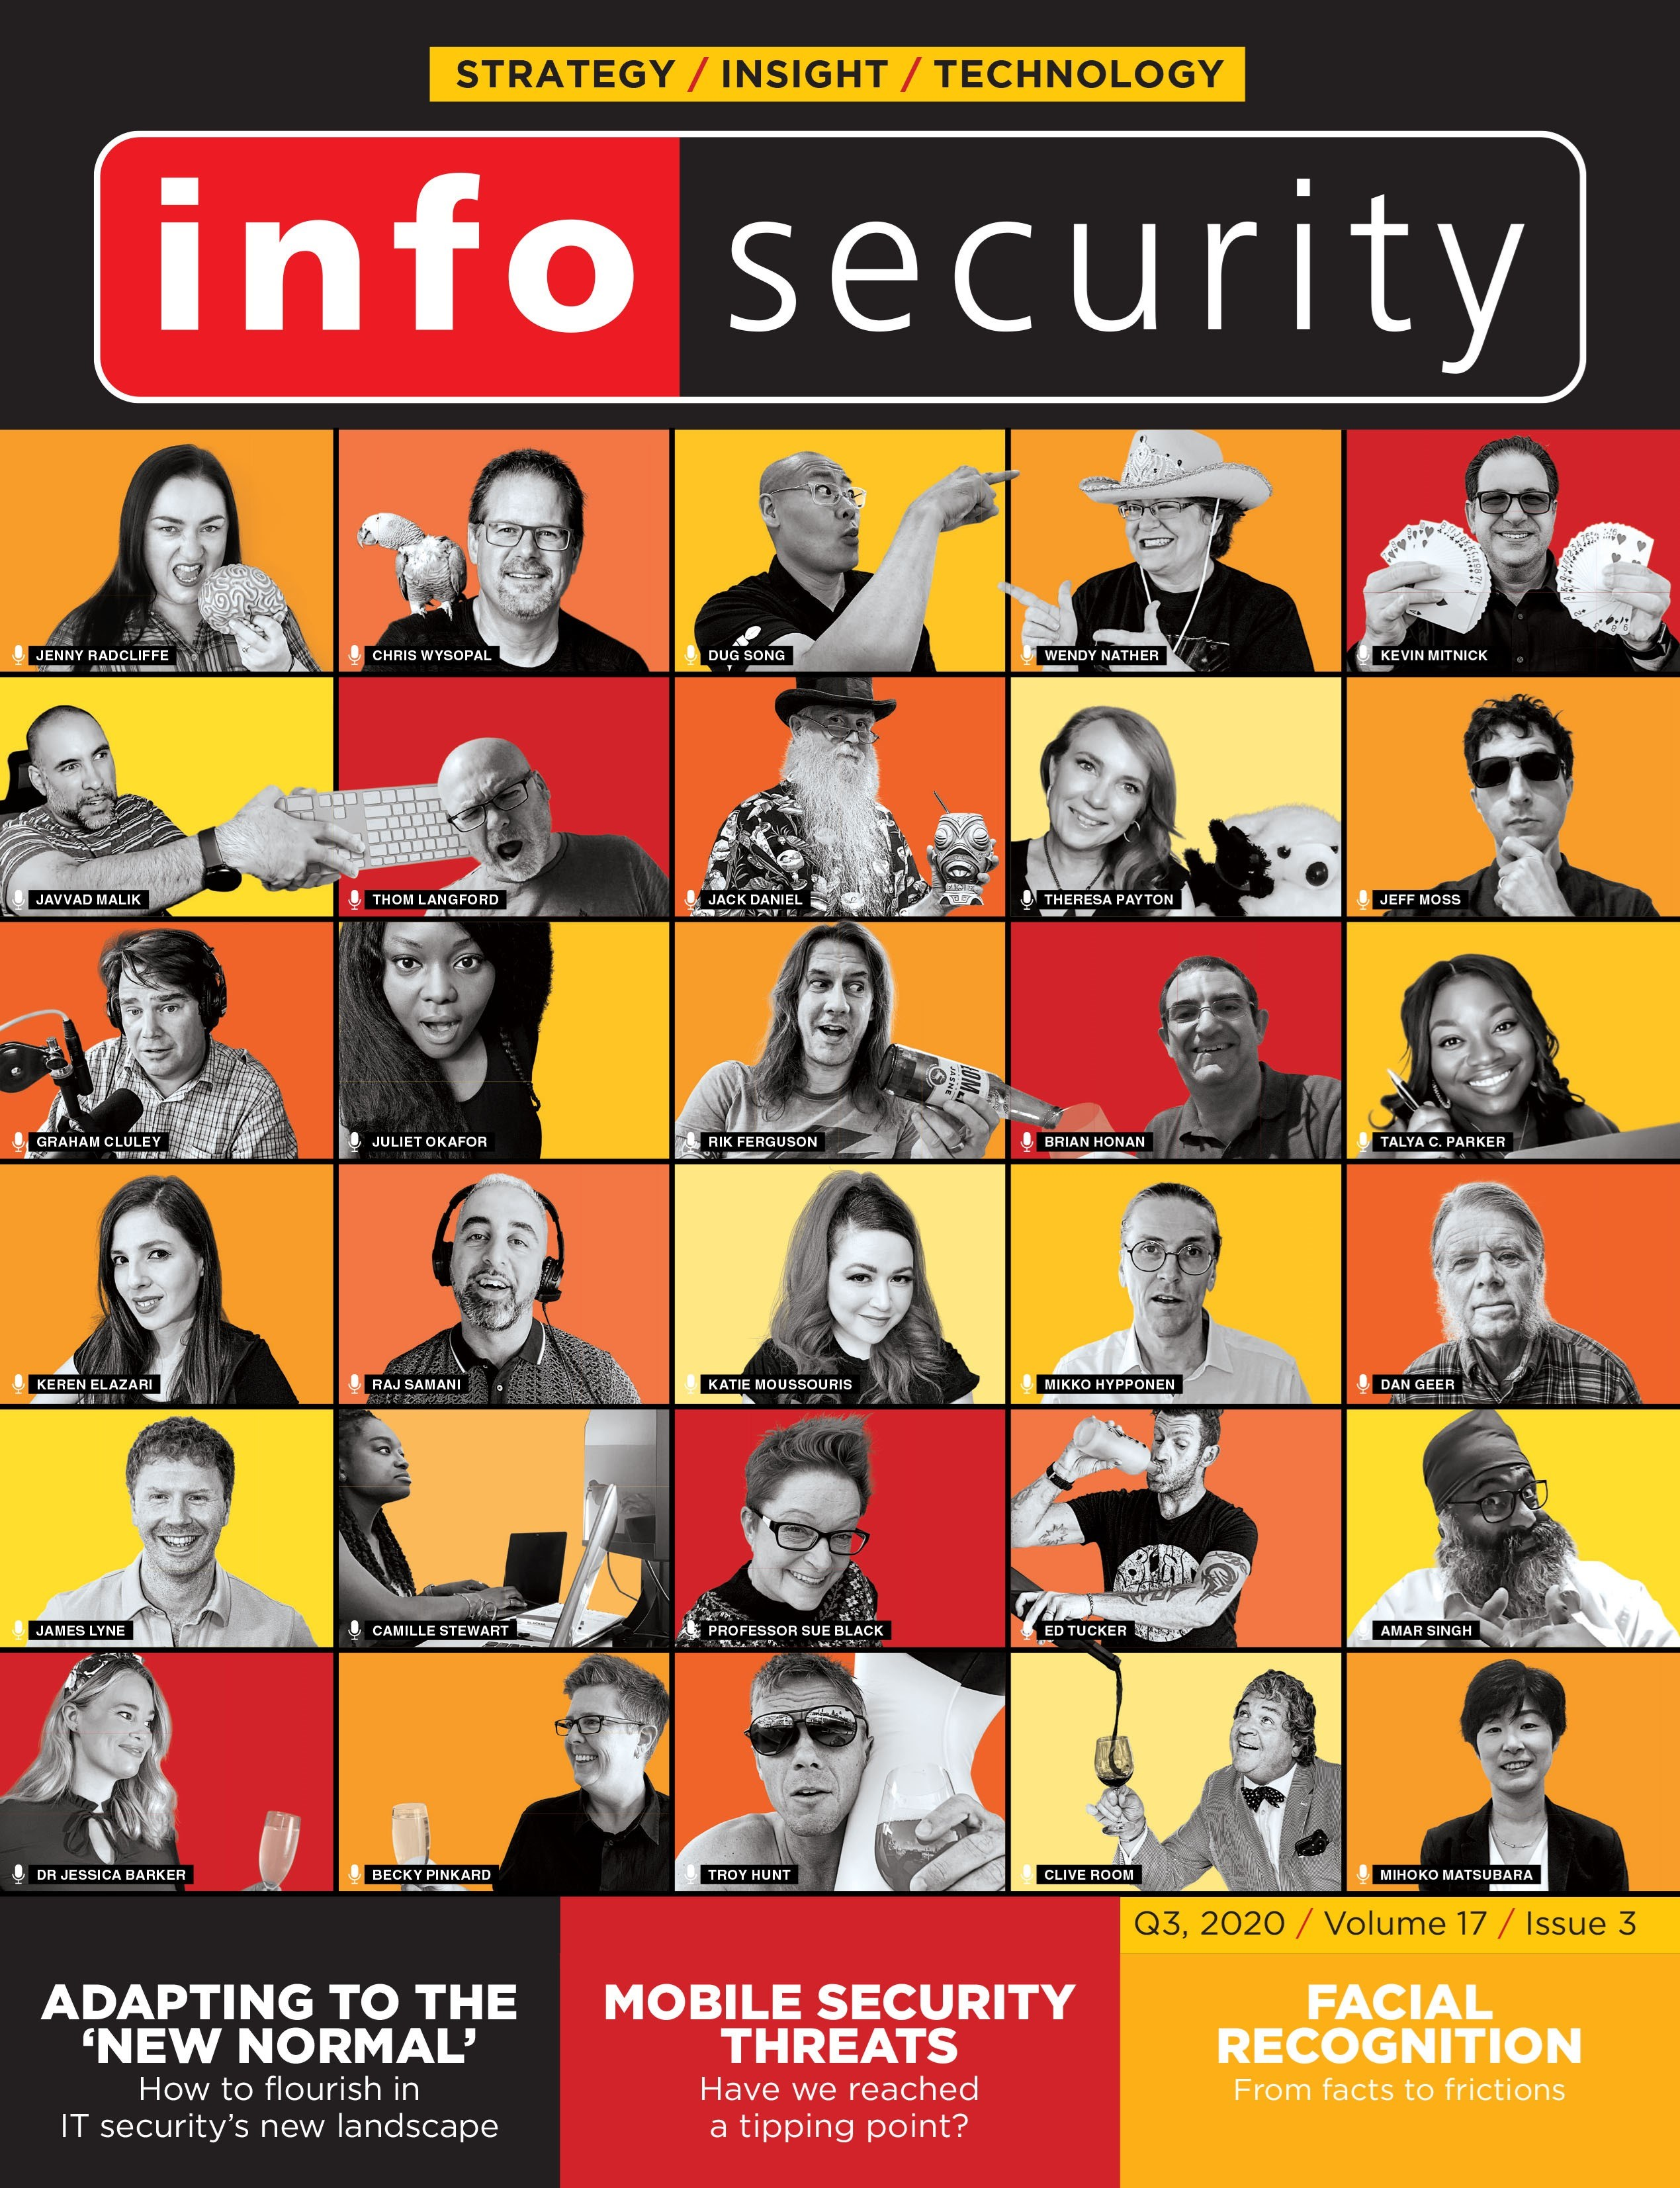 Infosecurity Magazine, Digital Edition, Q3, 2020, Volume 17, Issue 3